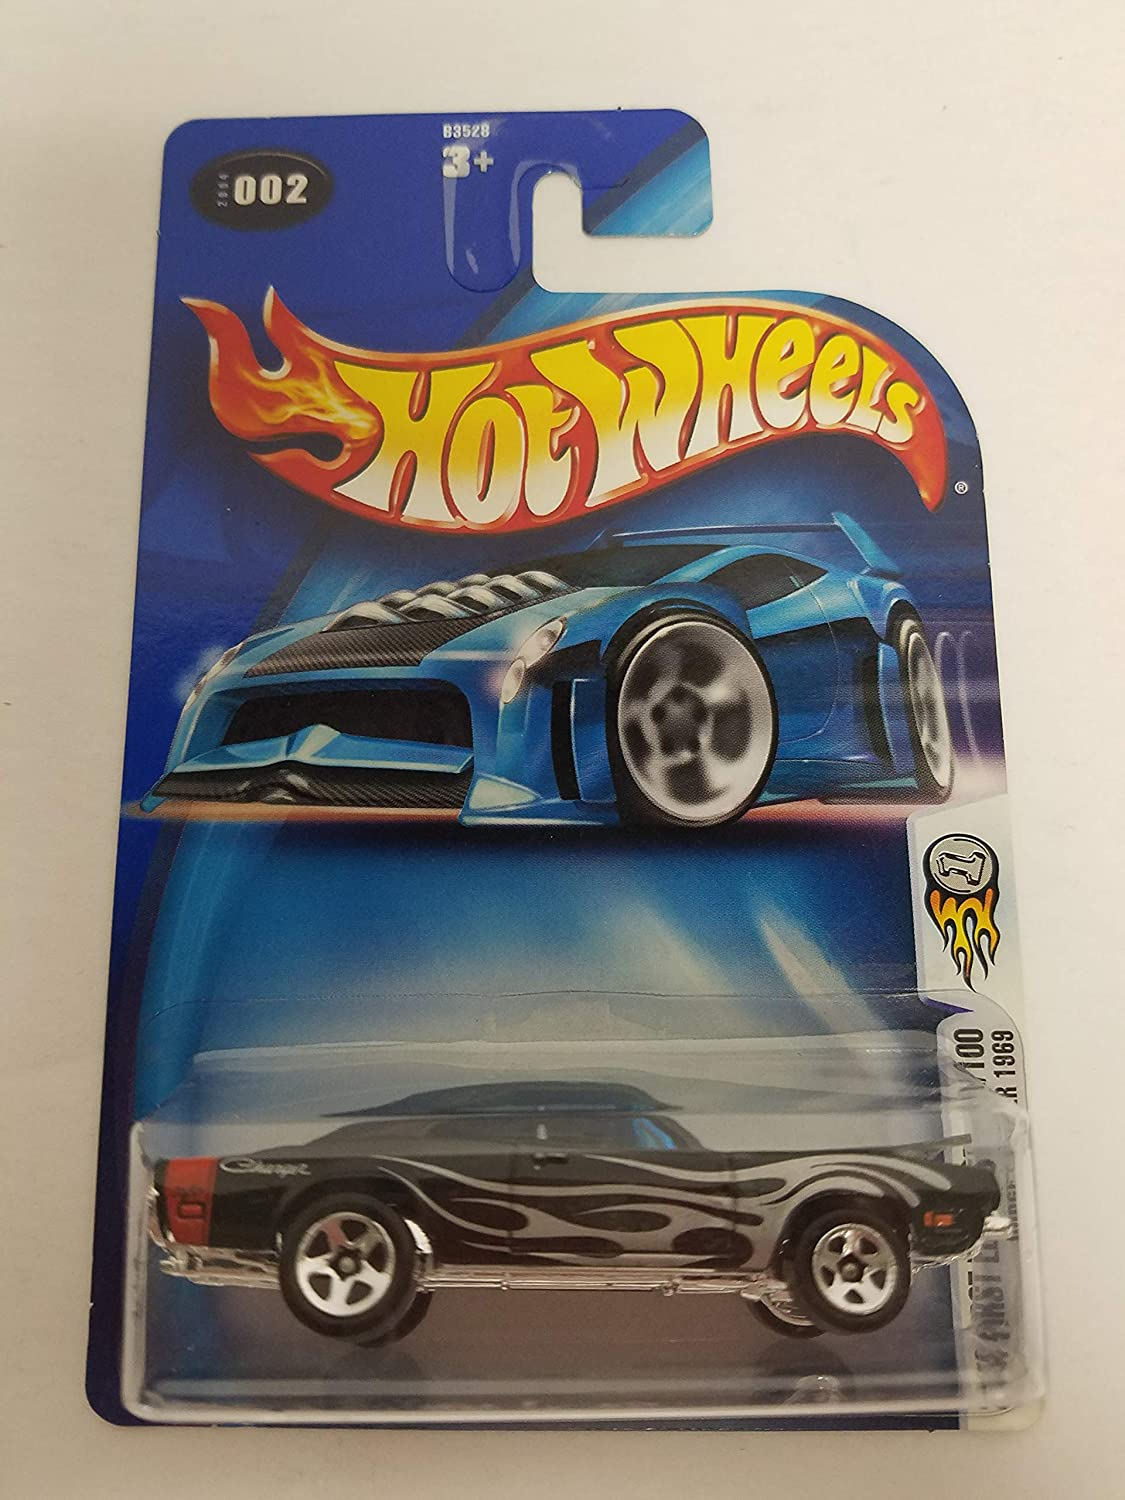 002 1969 Dodge Charger 2004 First Editions 2//100 Hot Wheels Diecast Car No